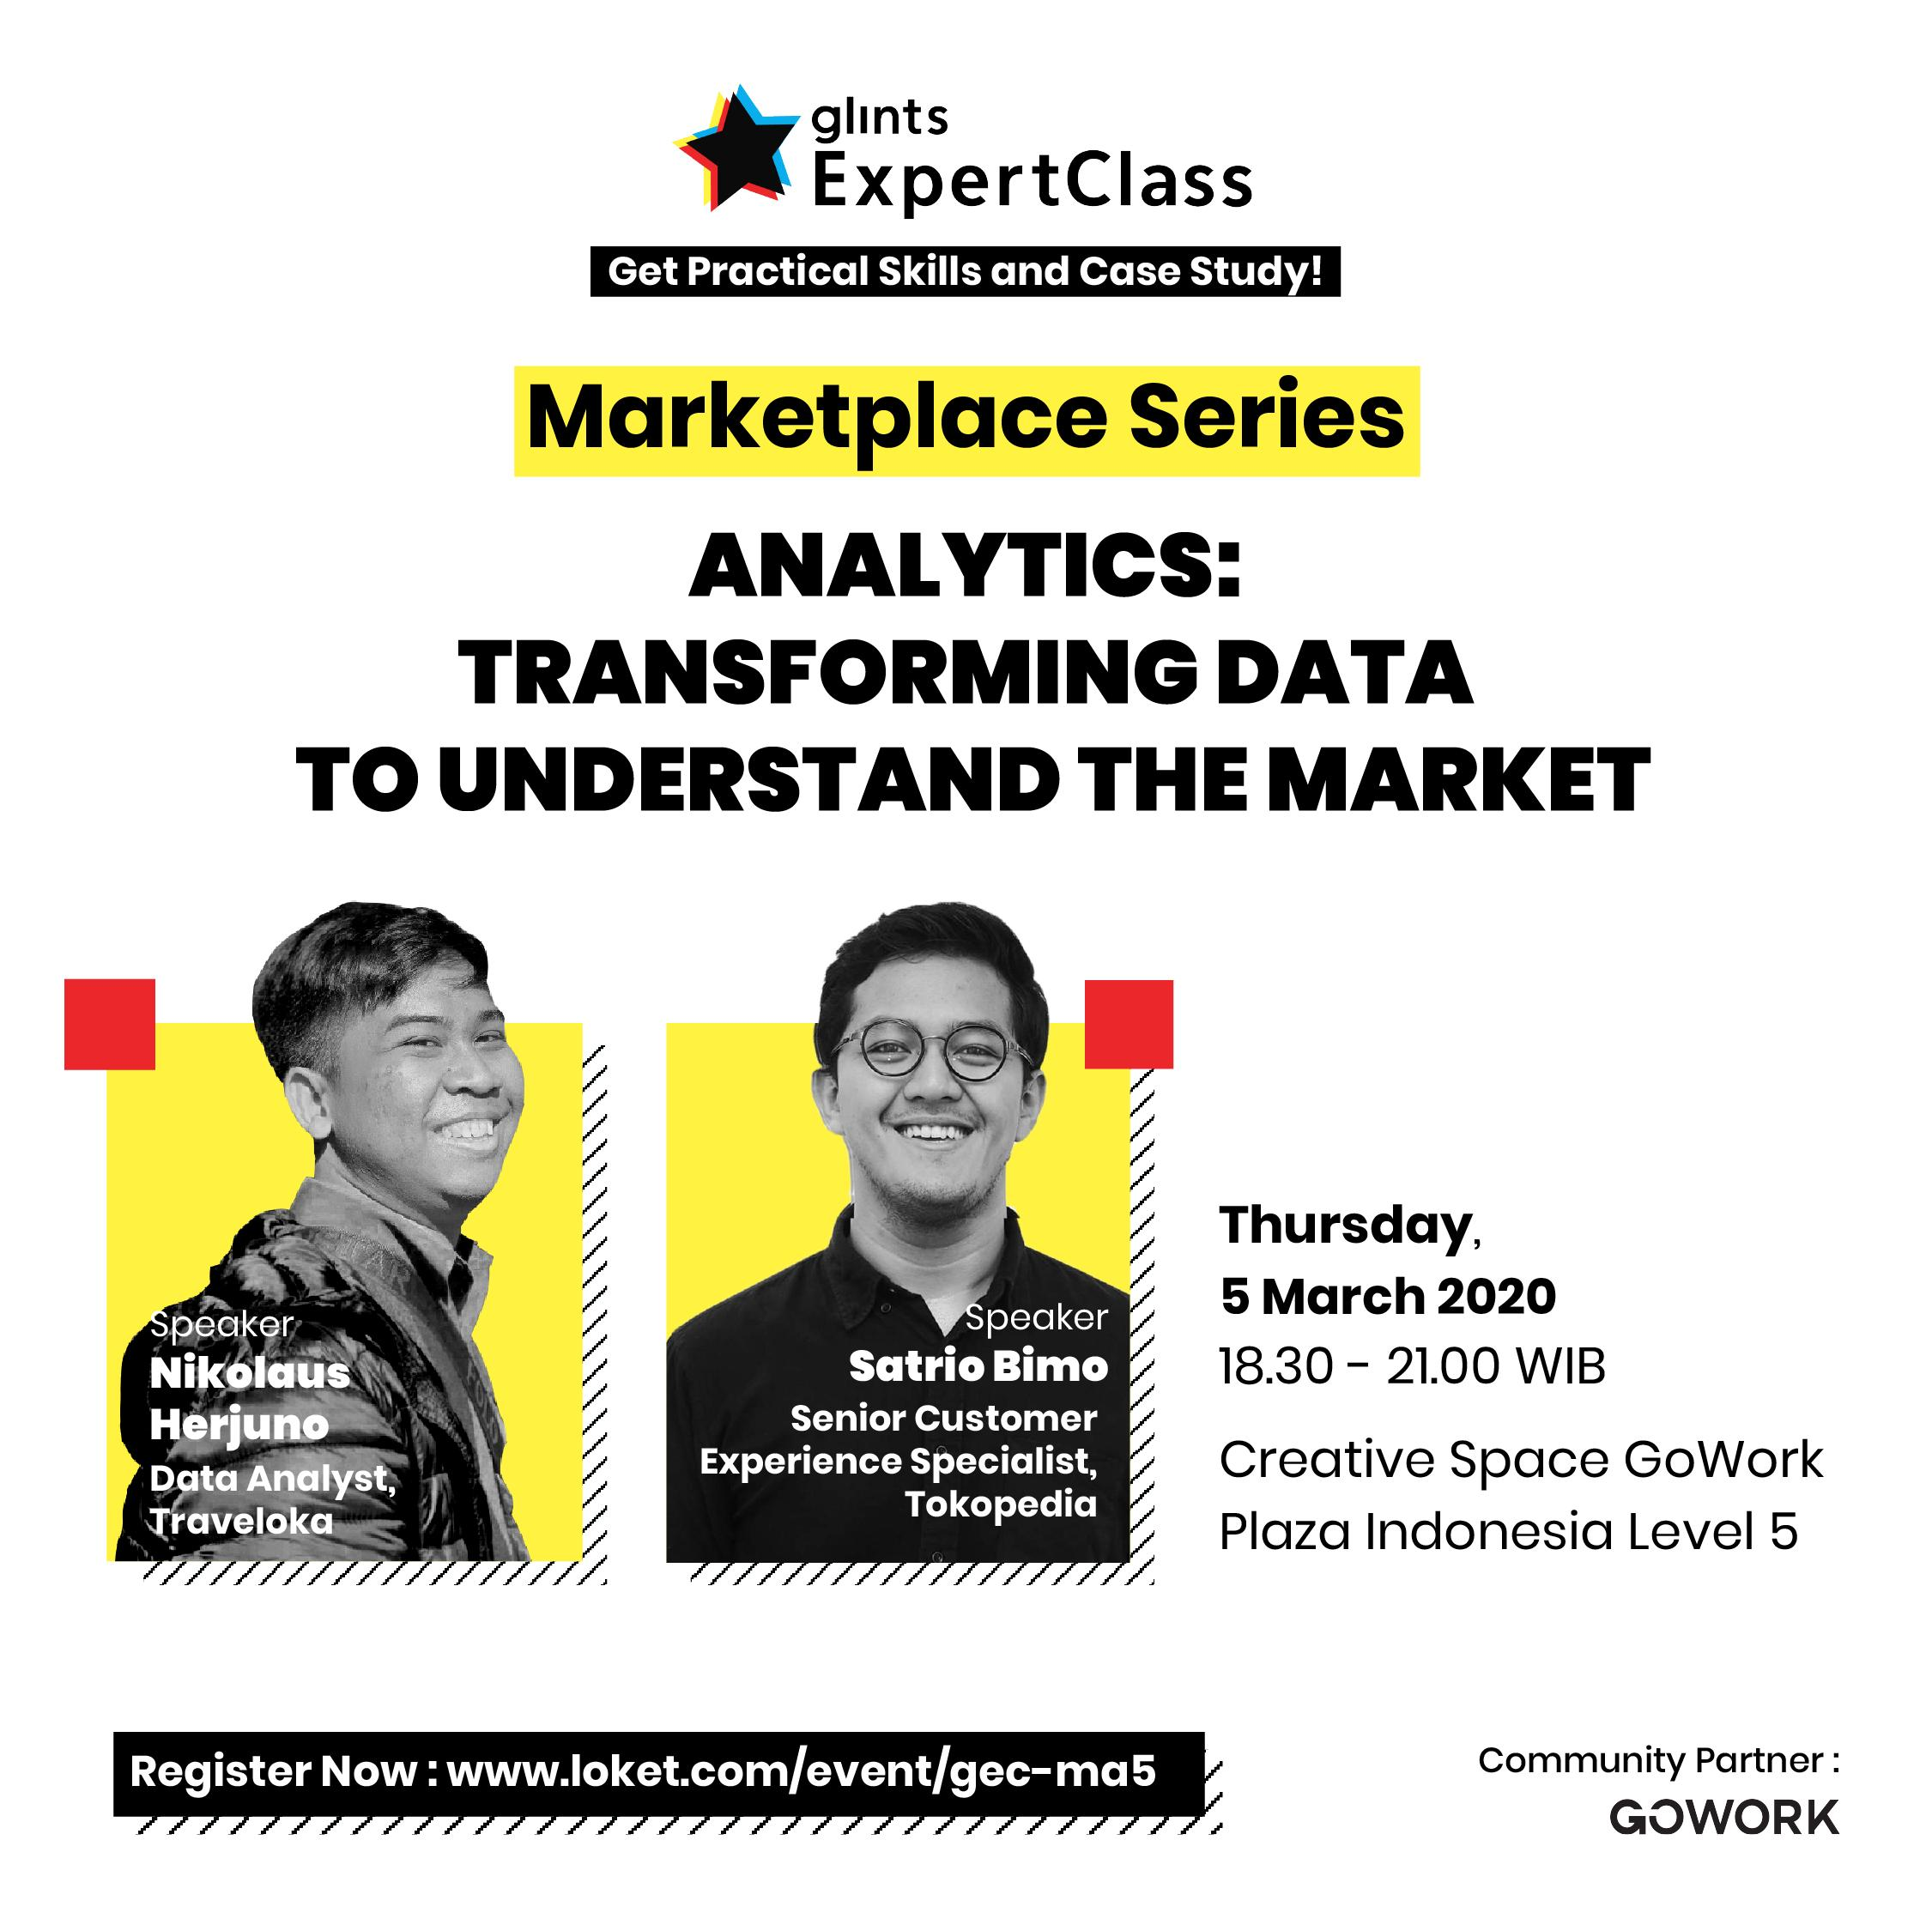 Glints Expert Class - Marketplace Series : Analytics Transforming Data To Understand The Market